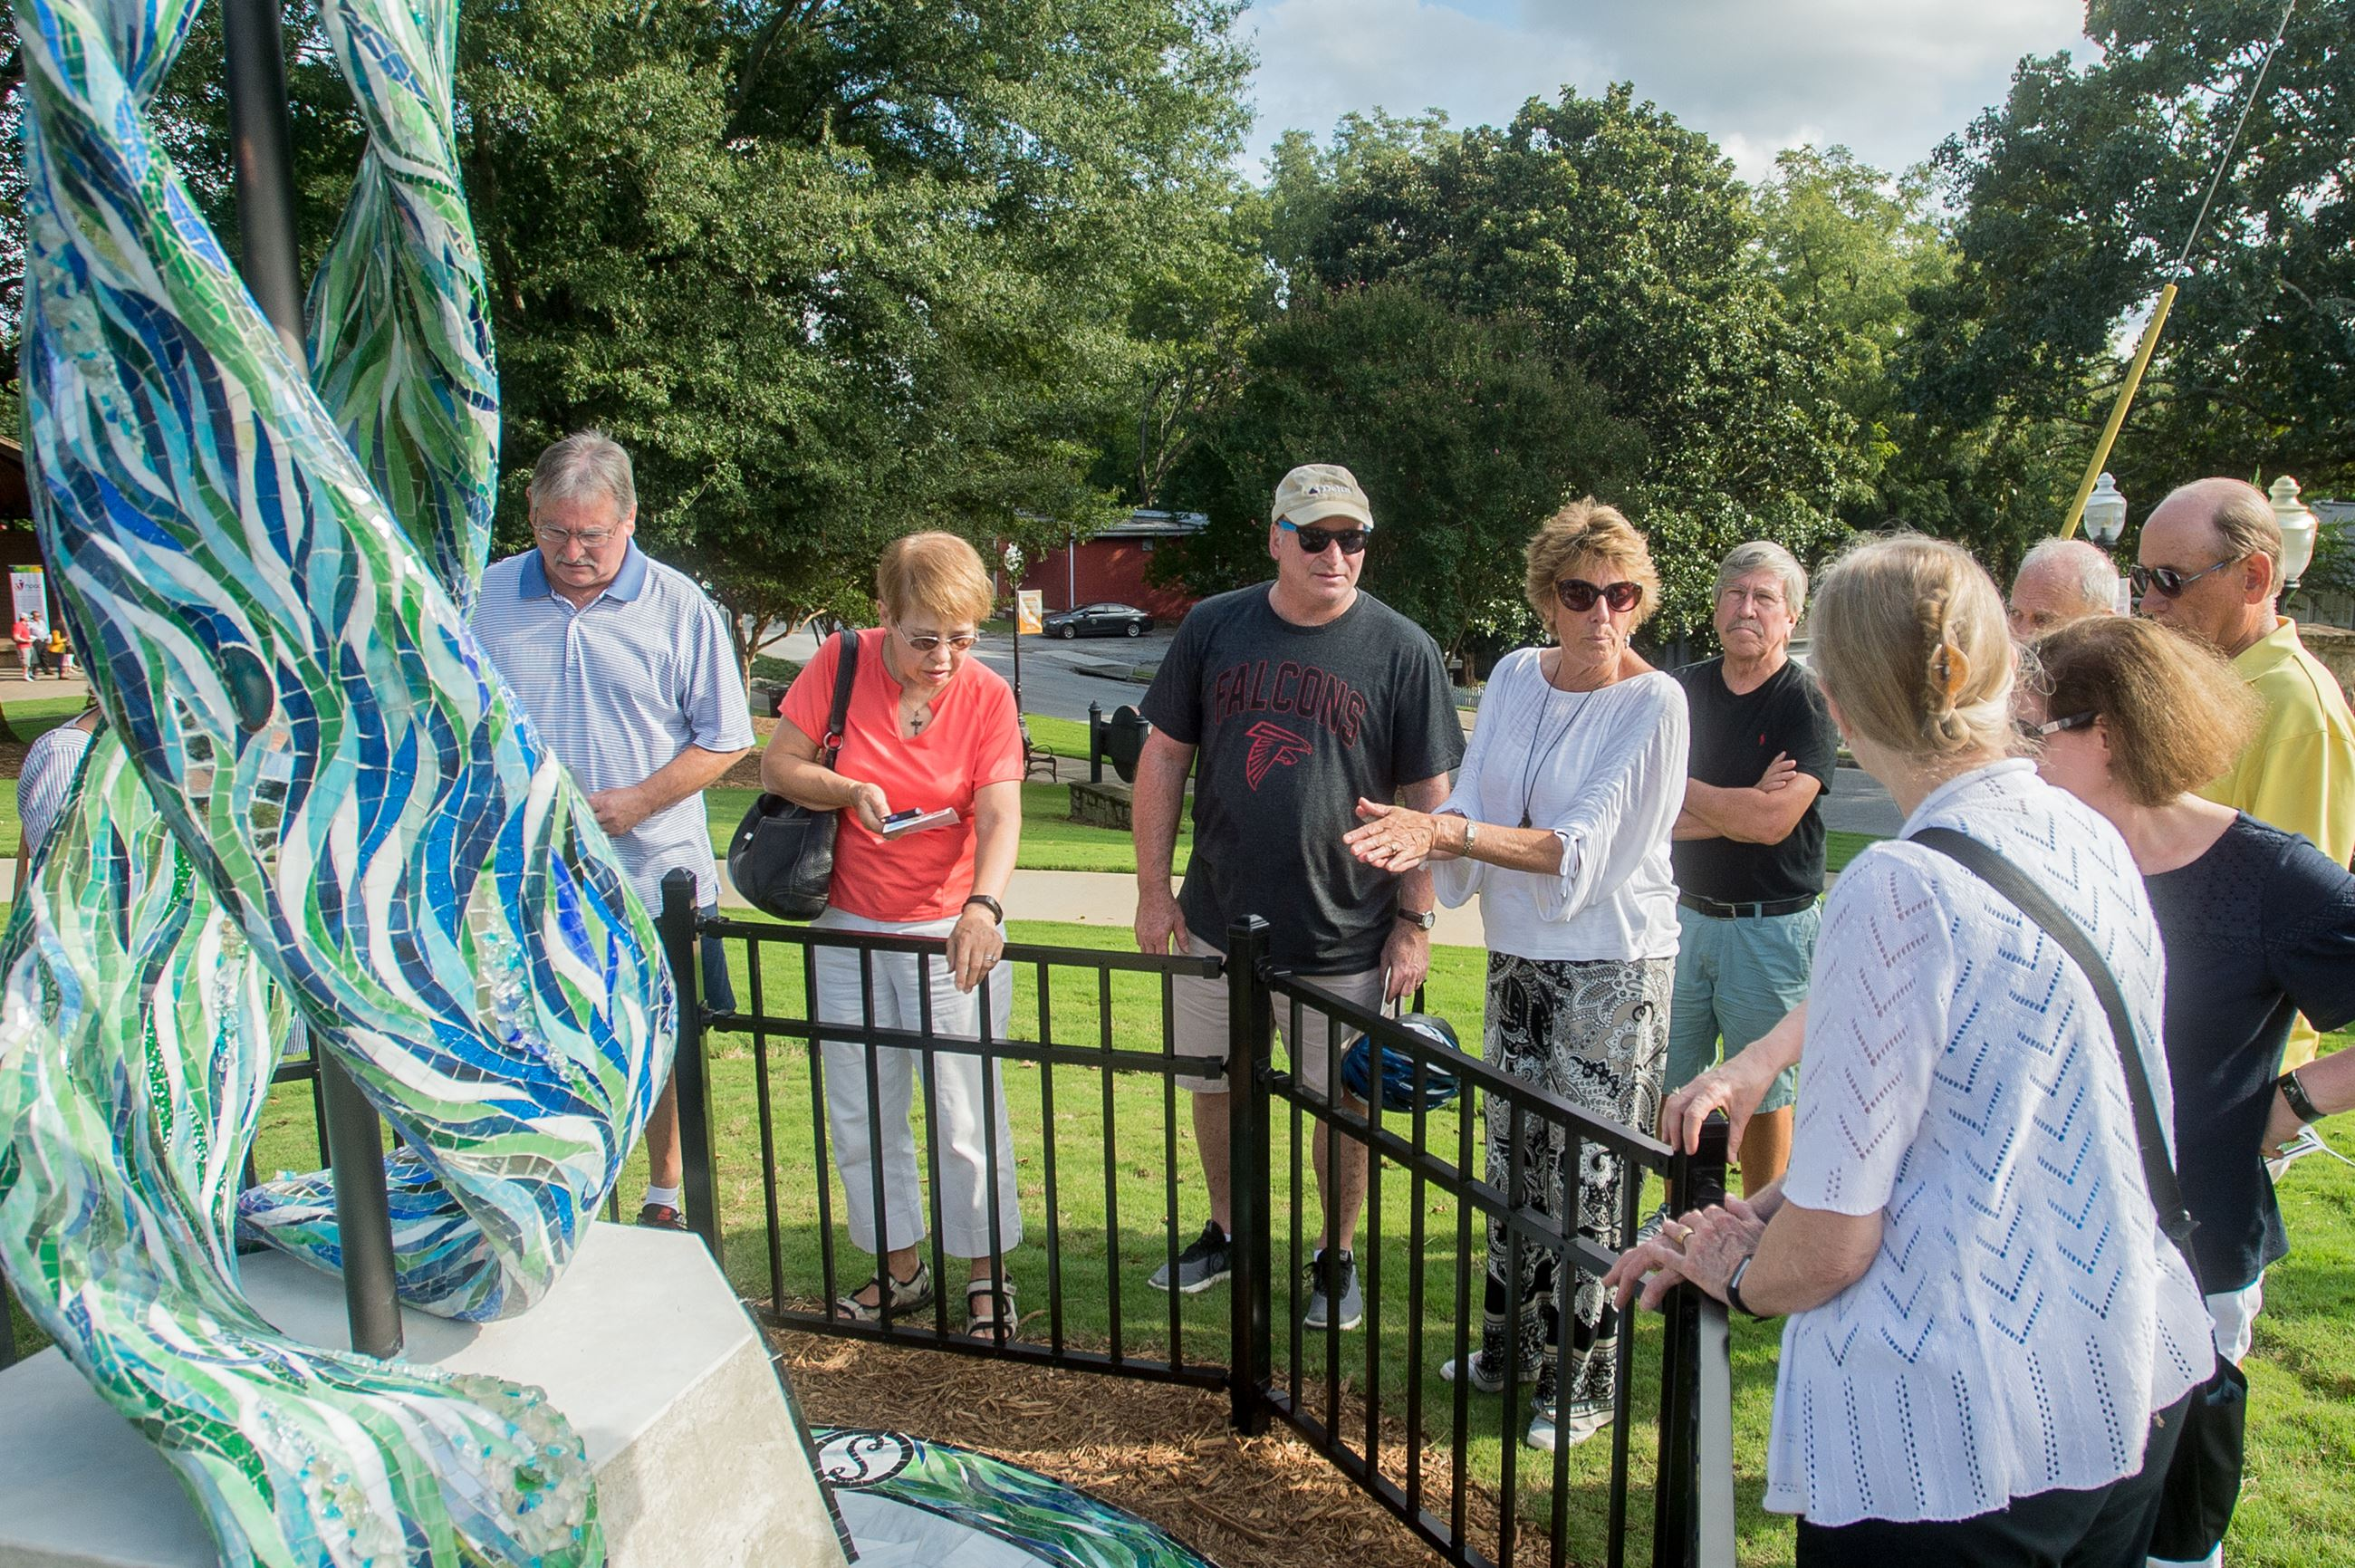 093018_norcross_art_unveiling-83